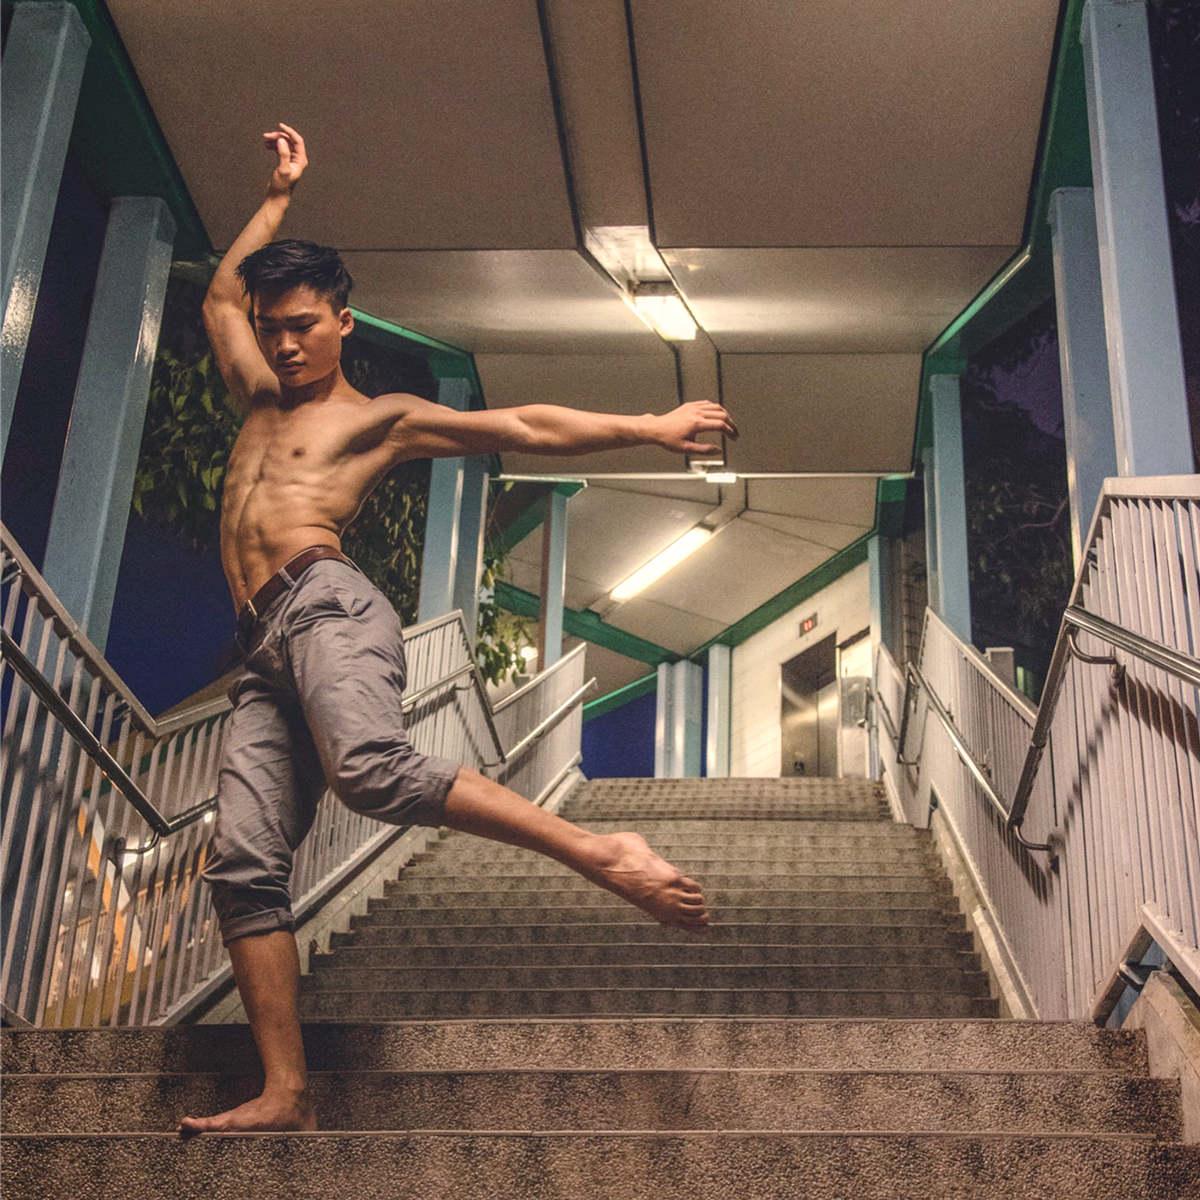 Rhyn Cheung is seen dancing barefoot on an outdoor staircase